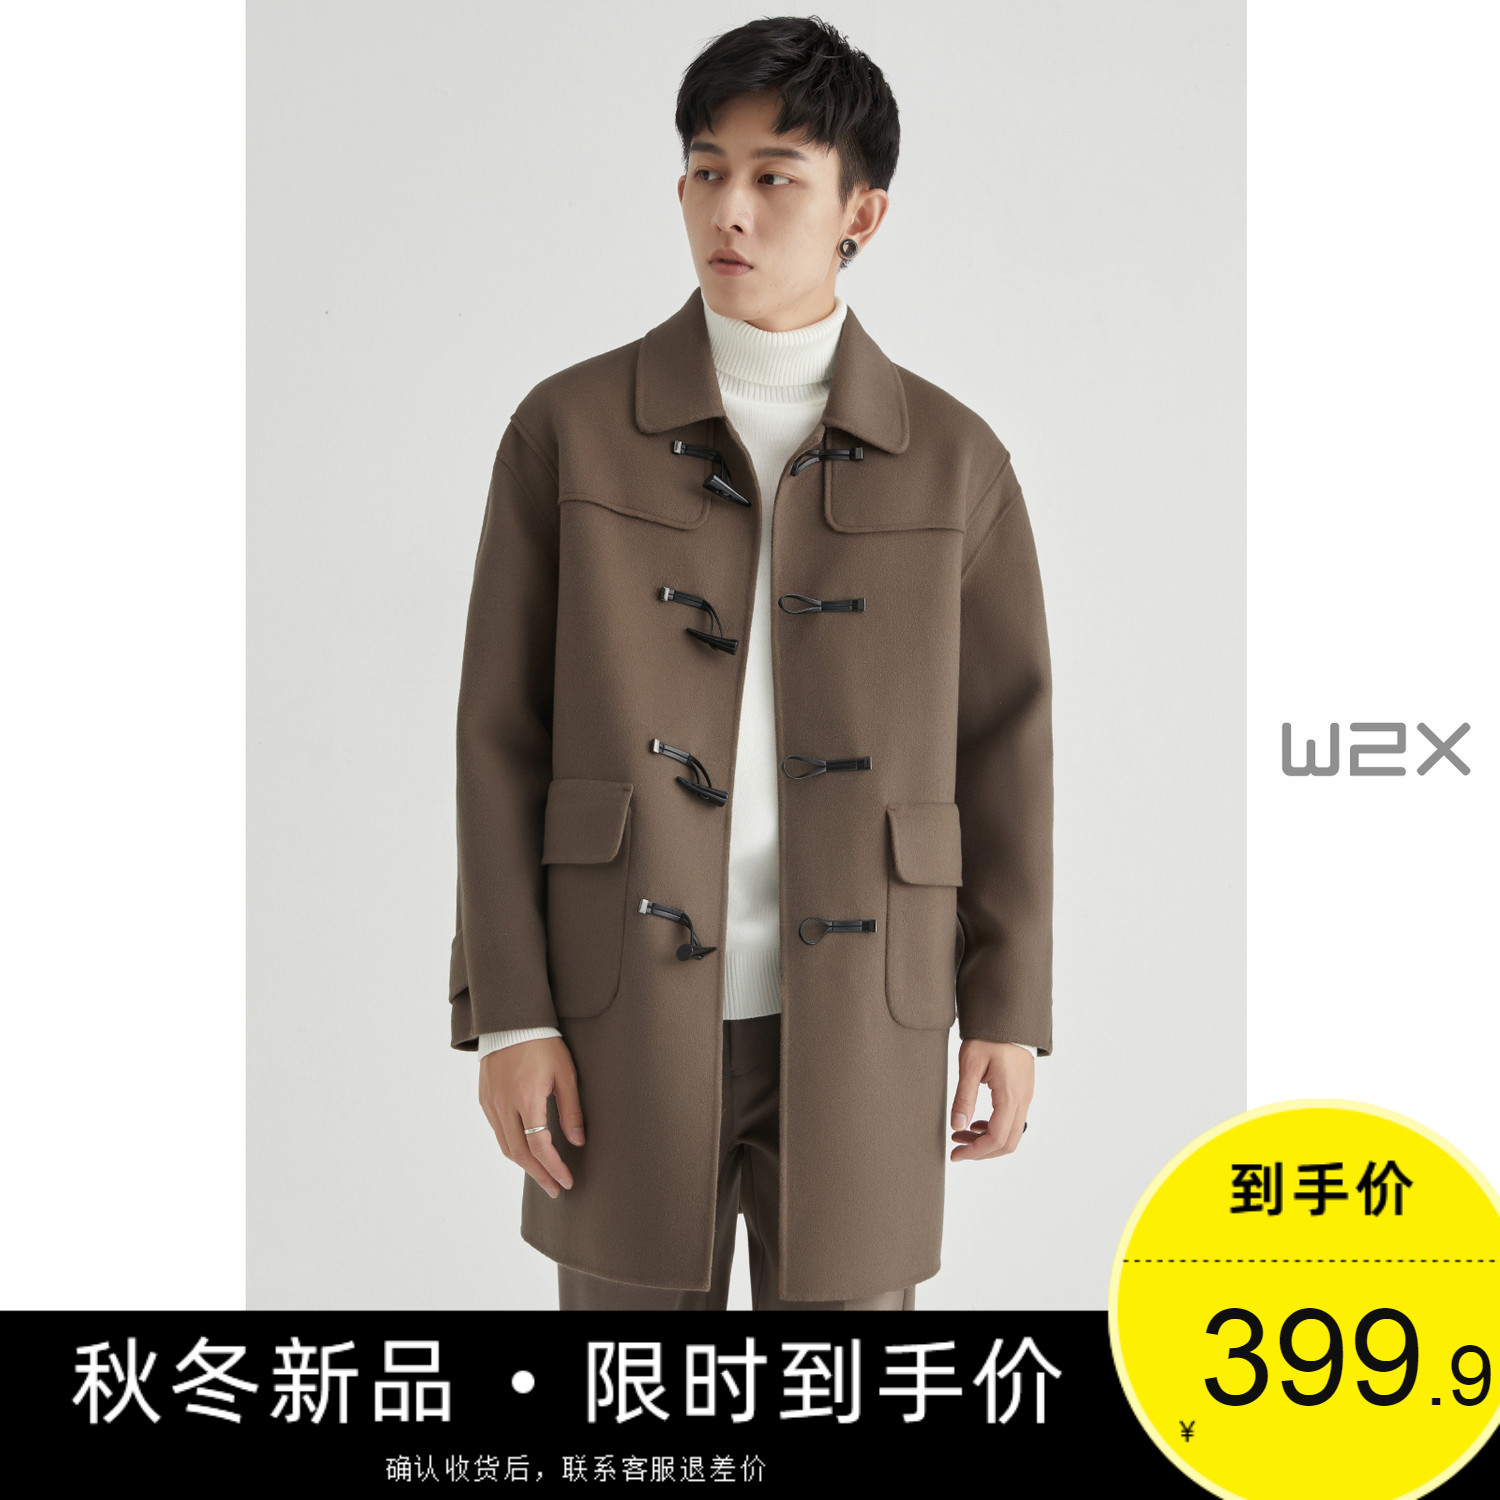 w2x winter double-sided woolen woolen coat men's mid-length loose Nizi coat horn-shaped buttoned woolen coat